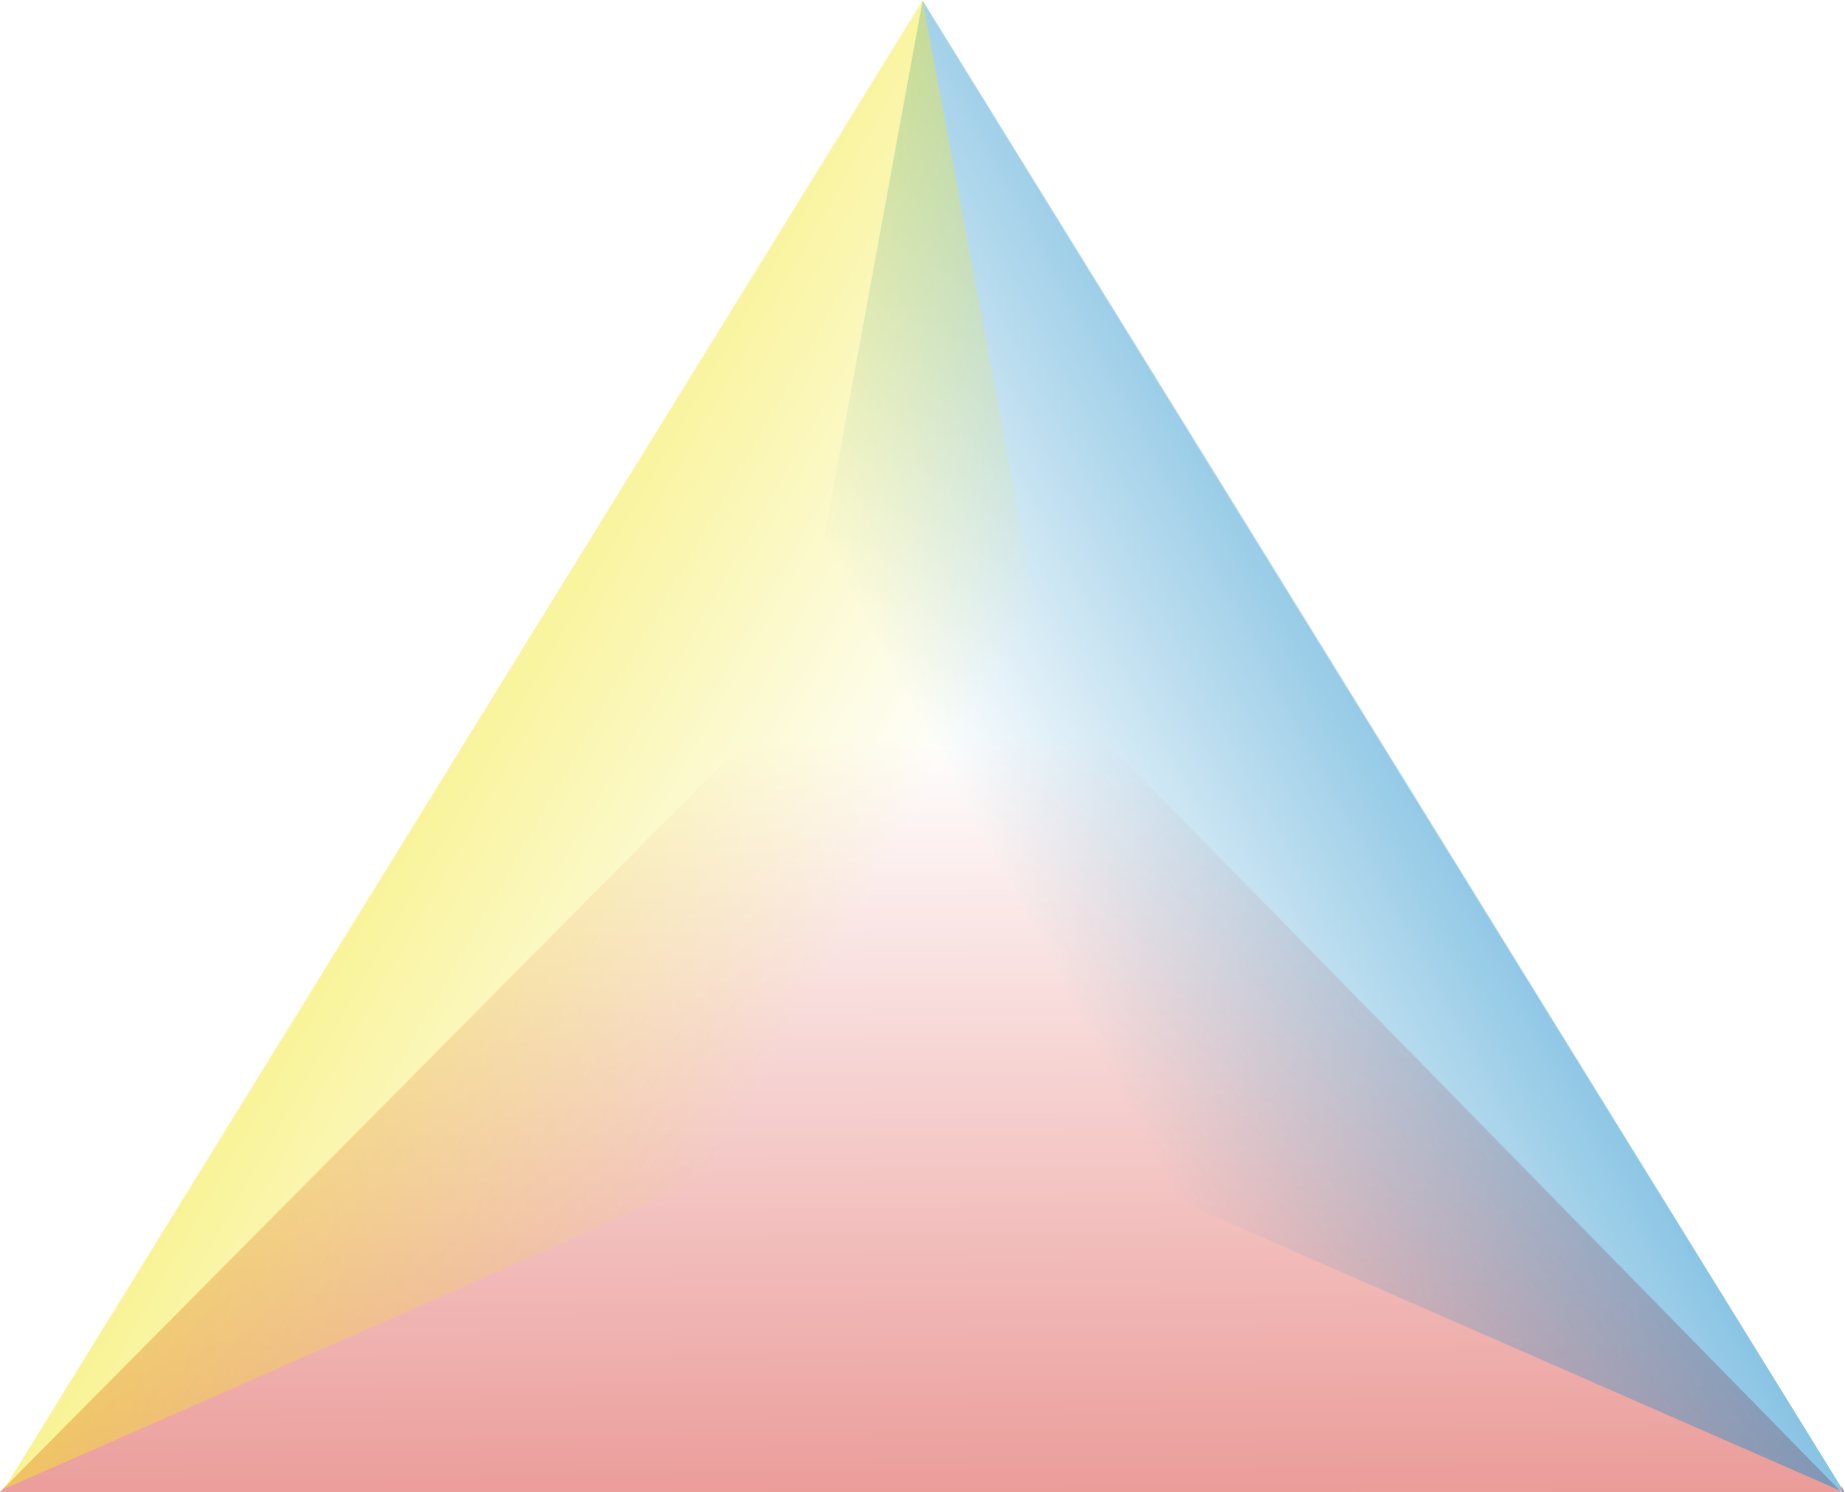 Cool triangle png. File model of love